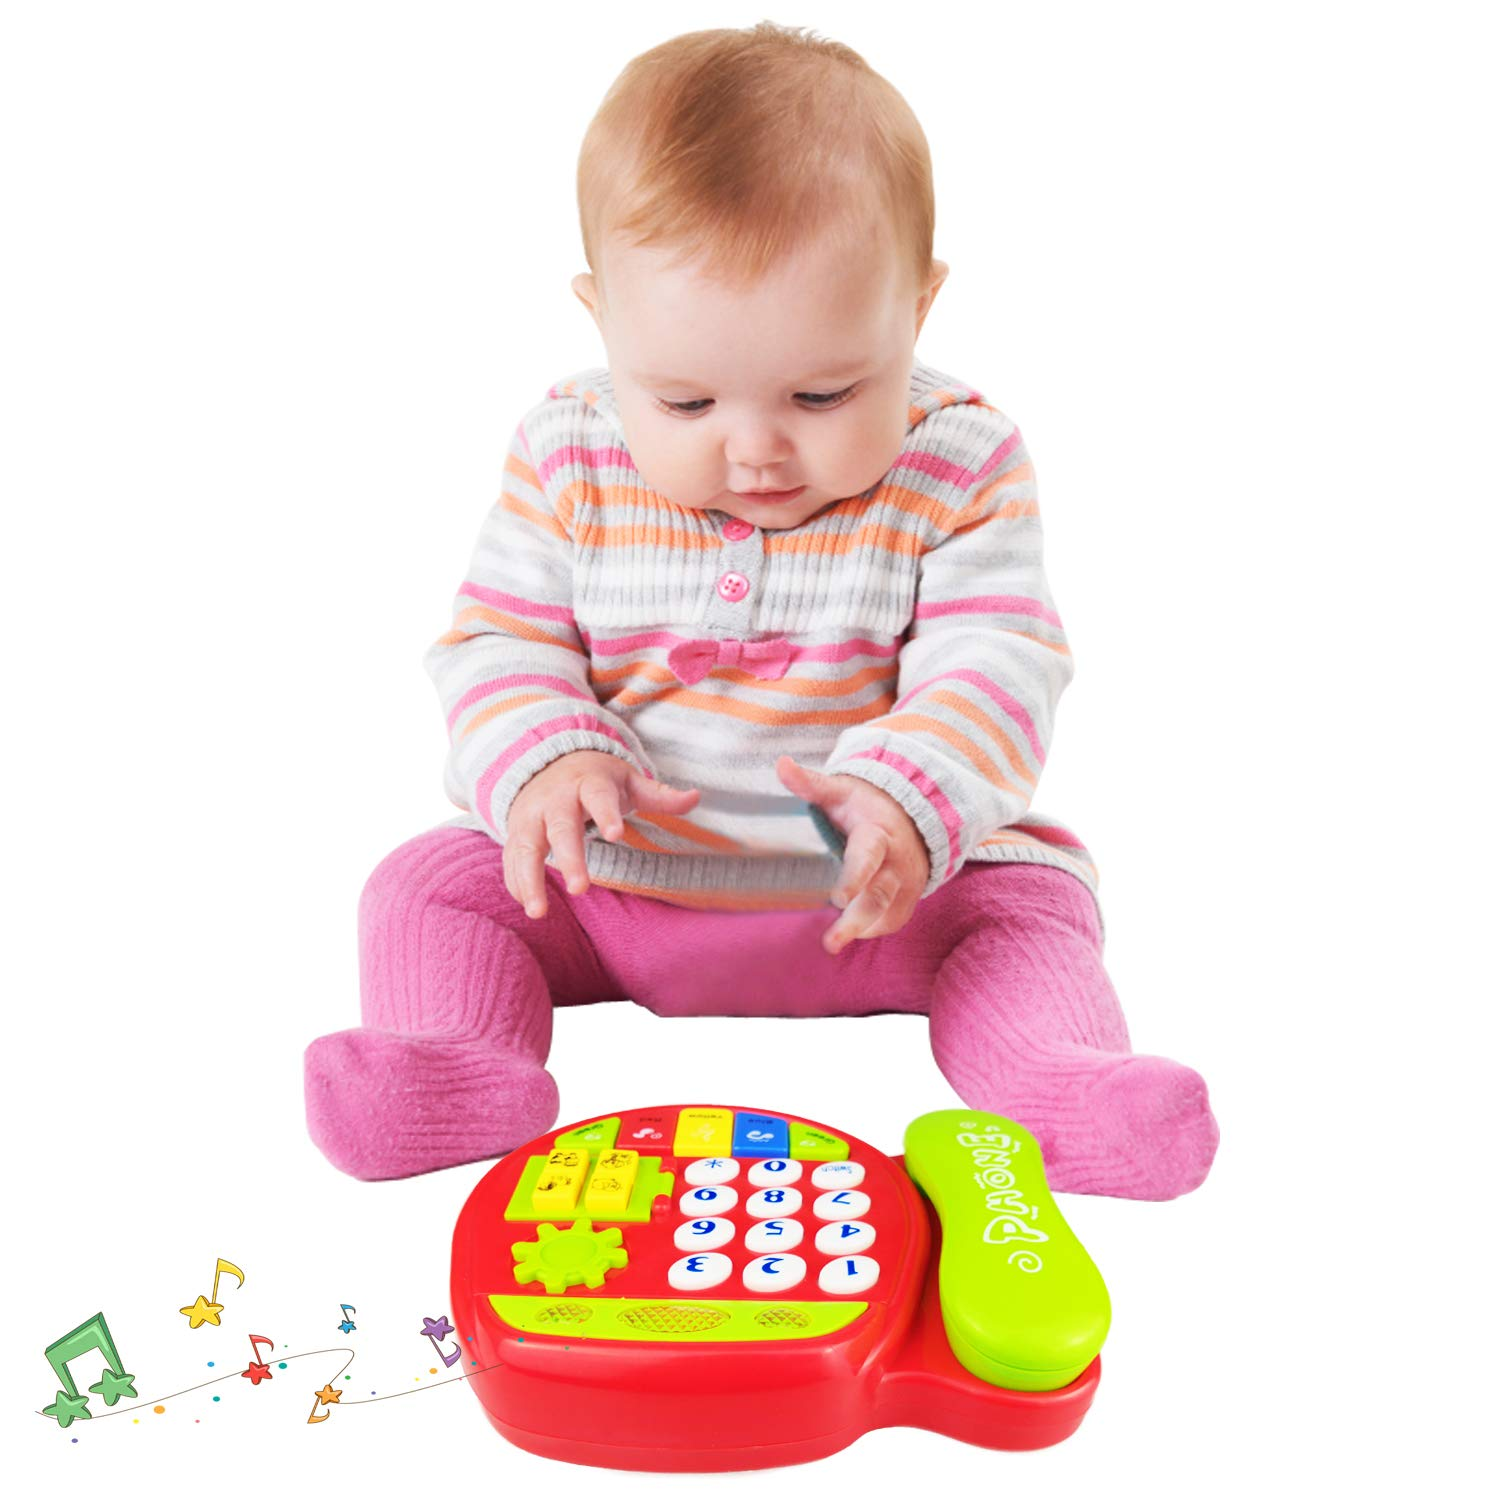 Telephone Toy for 3-12 Month Baby Toy Phone Gift 1-3 Year Old Baby Boy Girl Retro Toys for 6-18 Months Girl Kid Children Toy Gift 9-24 Months Toddlers Boy Phone Toy Age 1 2 3 Birthday Gift Babies